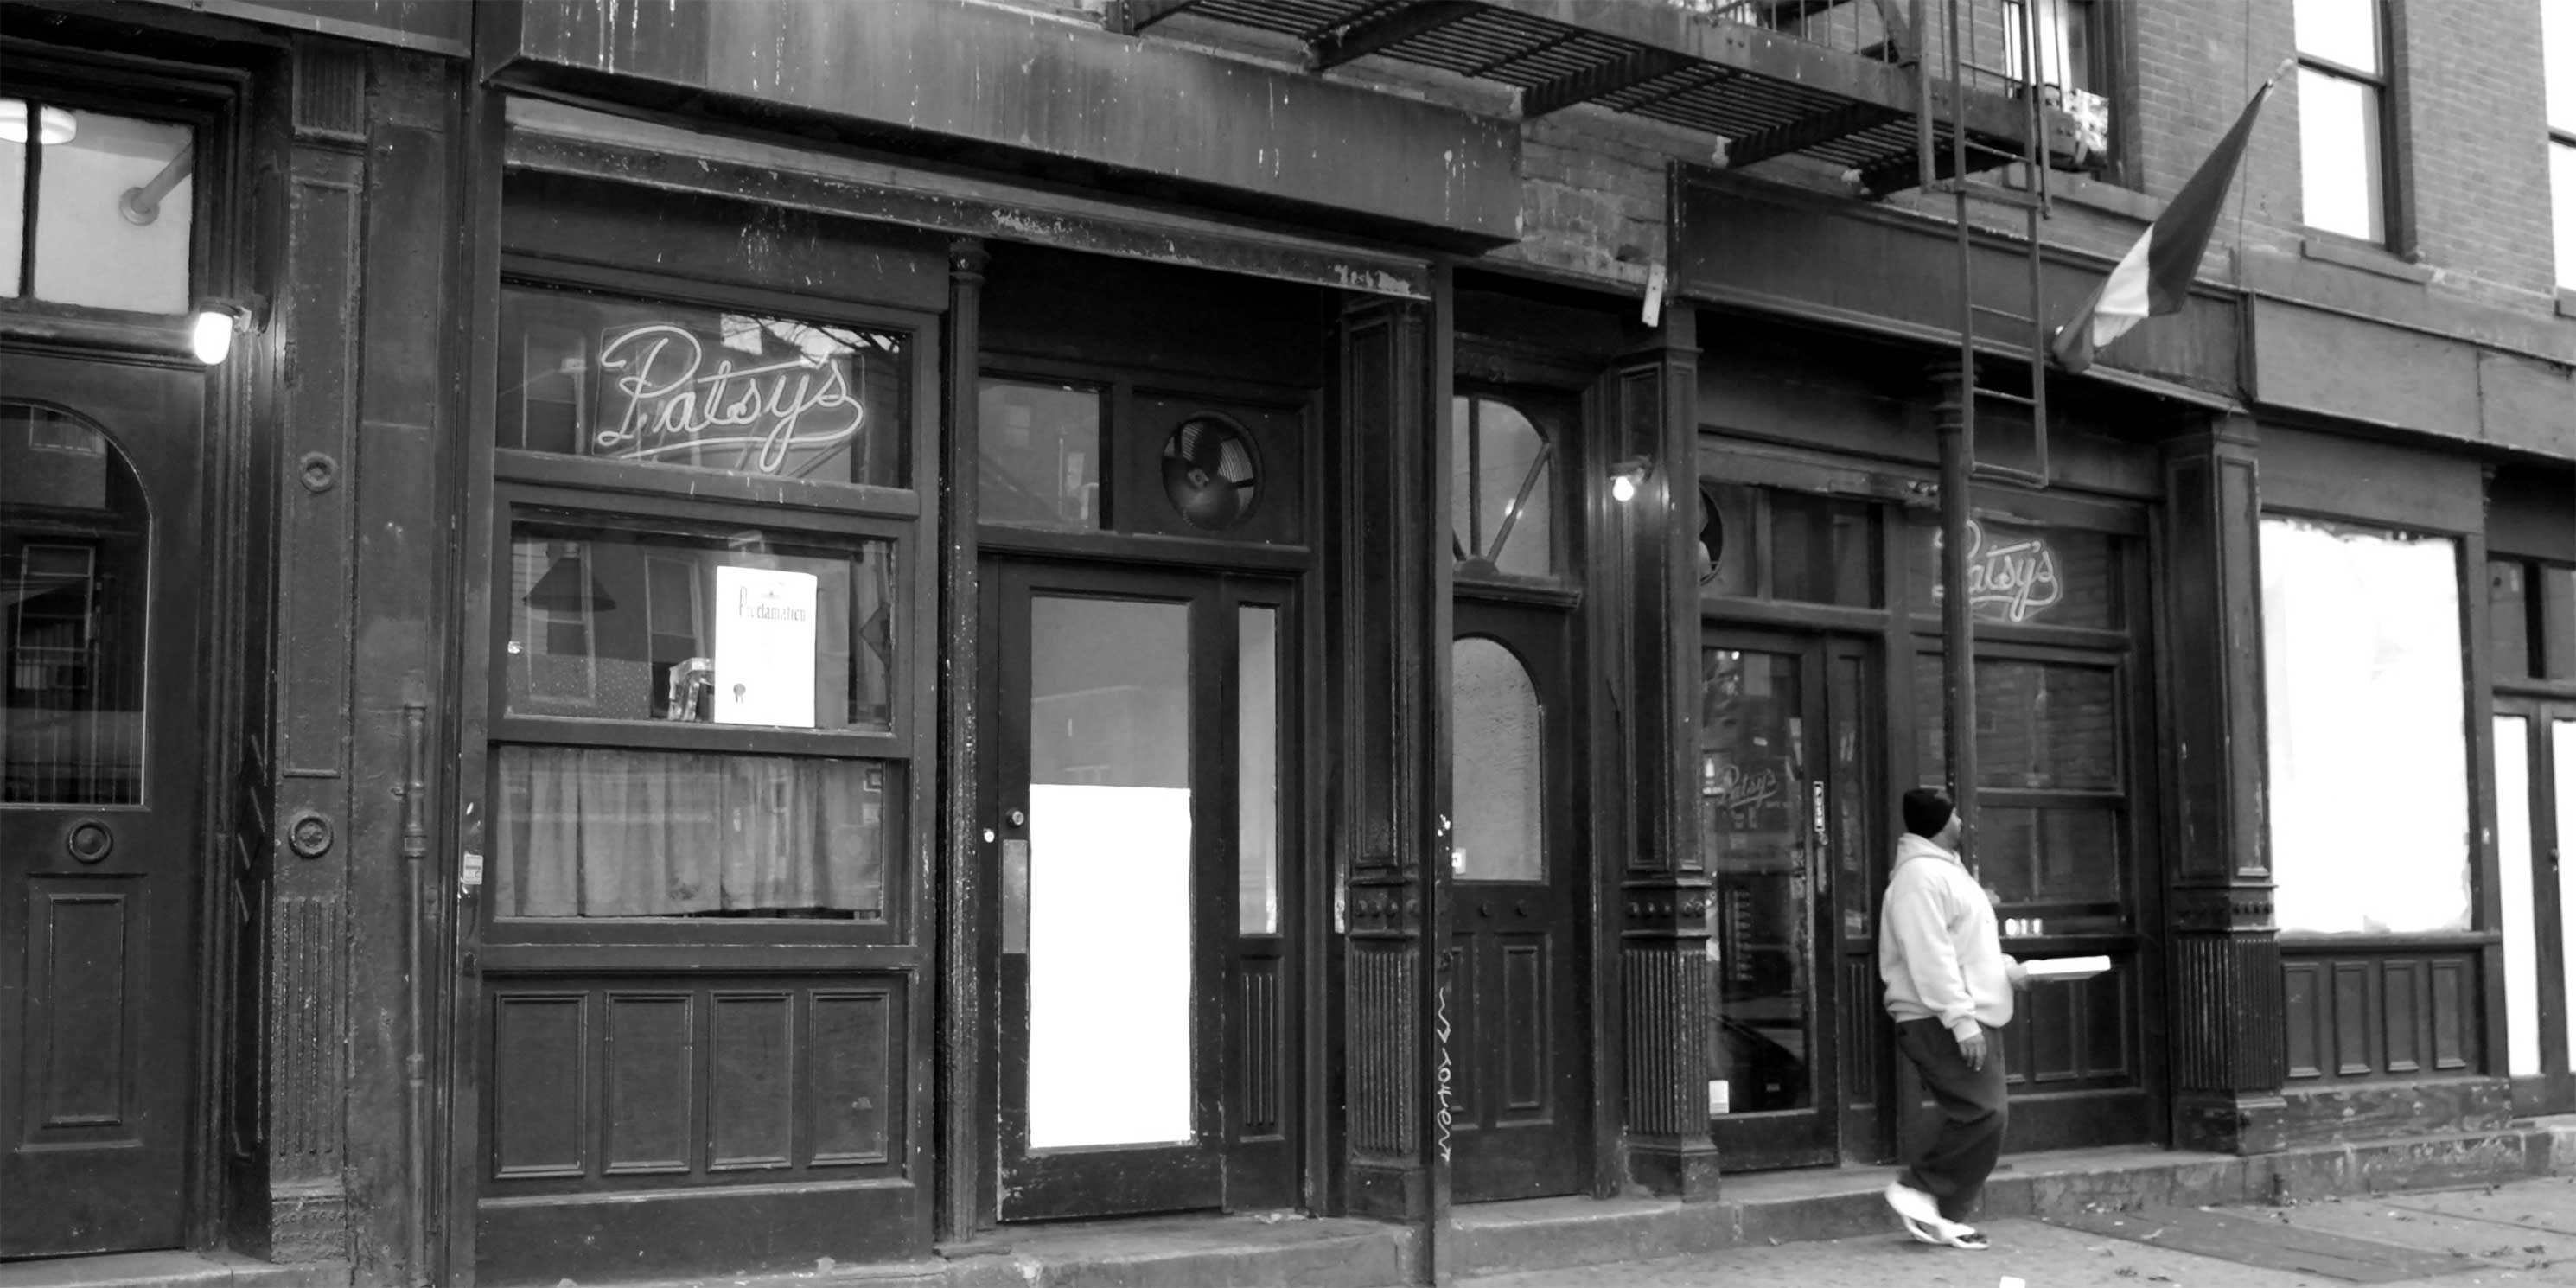 Patsy's Pizzeria in East Harlem. Photo: Wikimedia Commons, Paul Lowry.